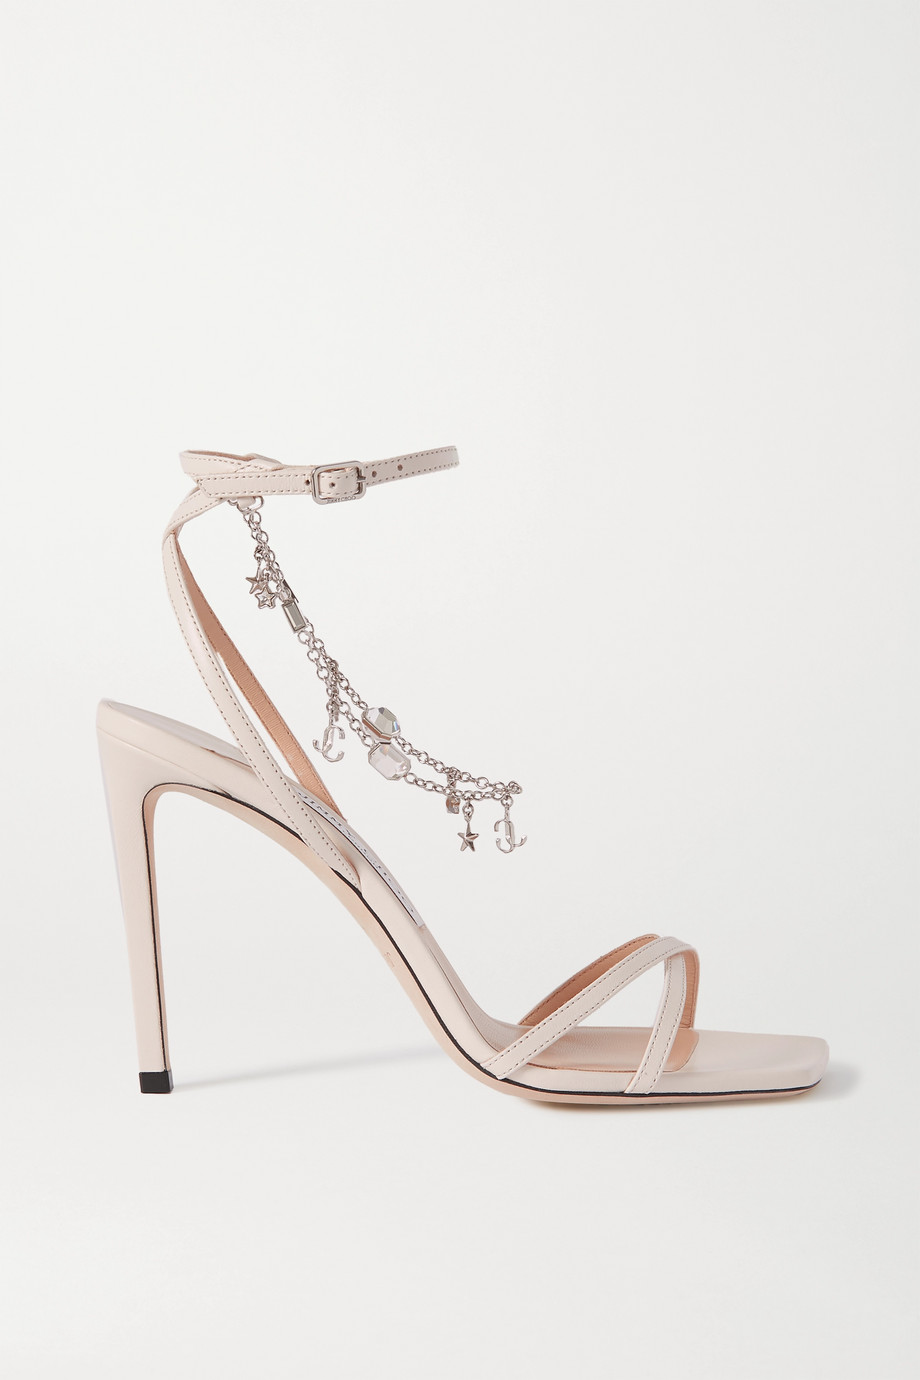 Jimmy Choo Metz 100 logo-embellished leather sandals